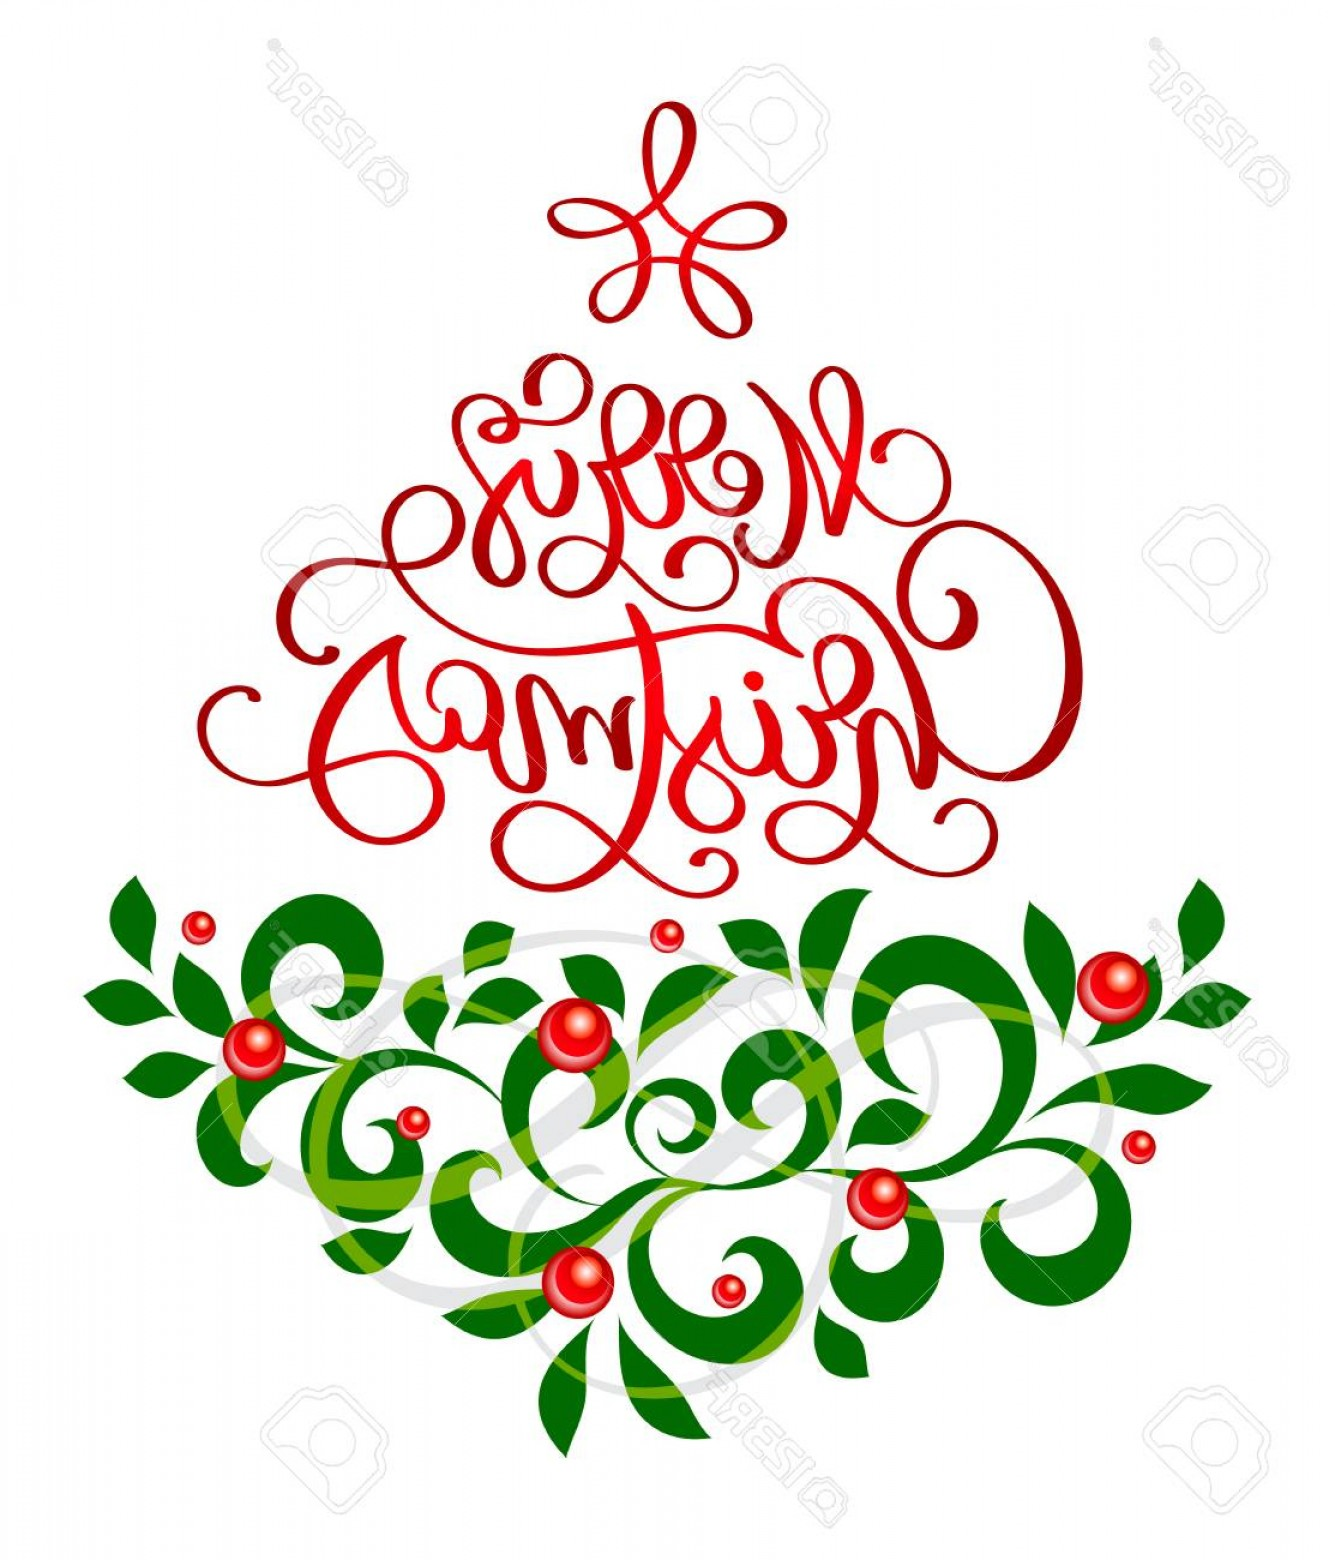 Vector Flourish Christmas: Photostock Vector Merry Christmas Text Lettering Calligraphic With A Vintage Flourish Design Element In The Form Of A